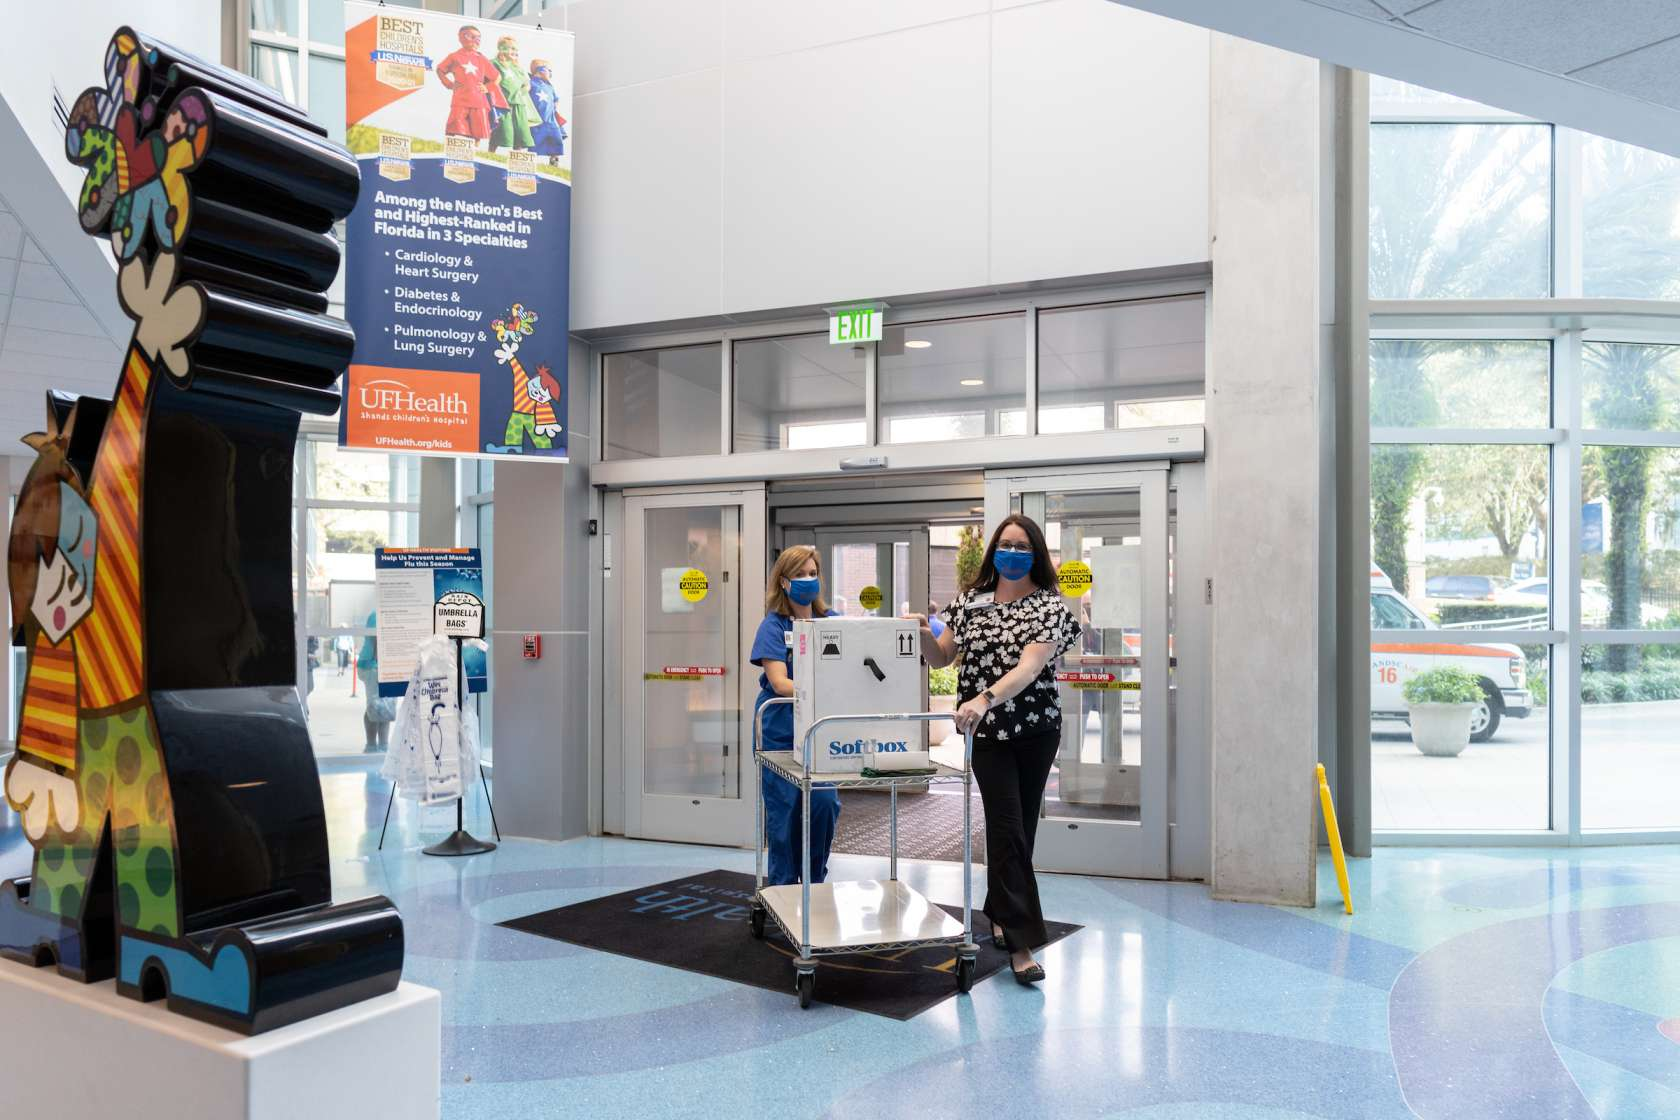 The first COVID-19 vaccine arriving at UF Health in Gainesville, FL (December 14, 2020)